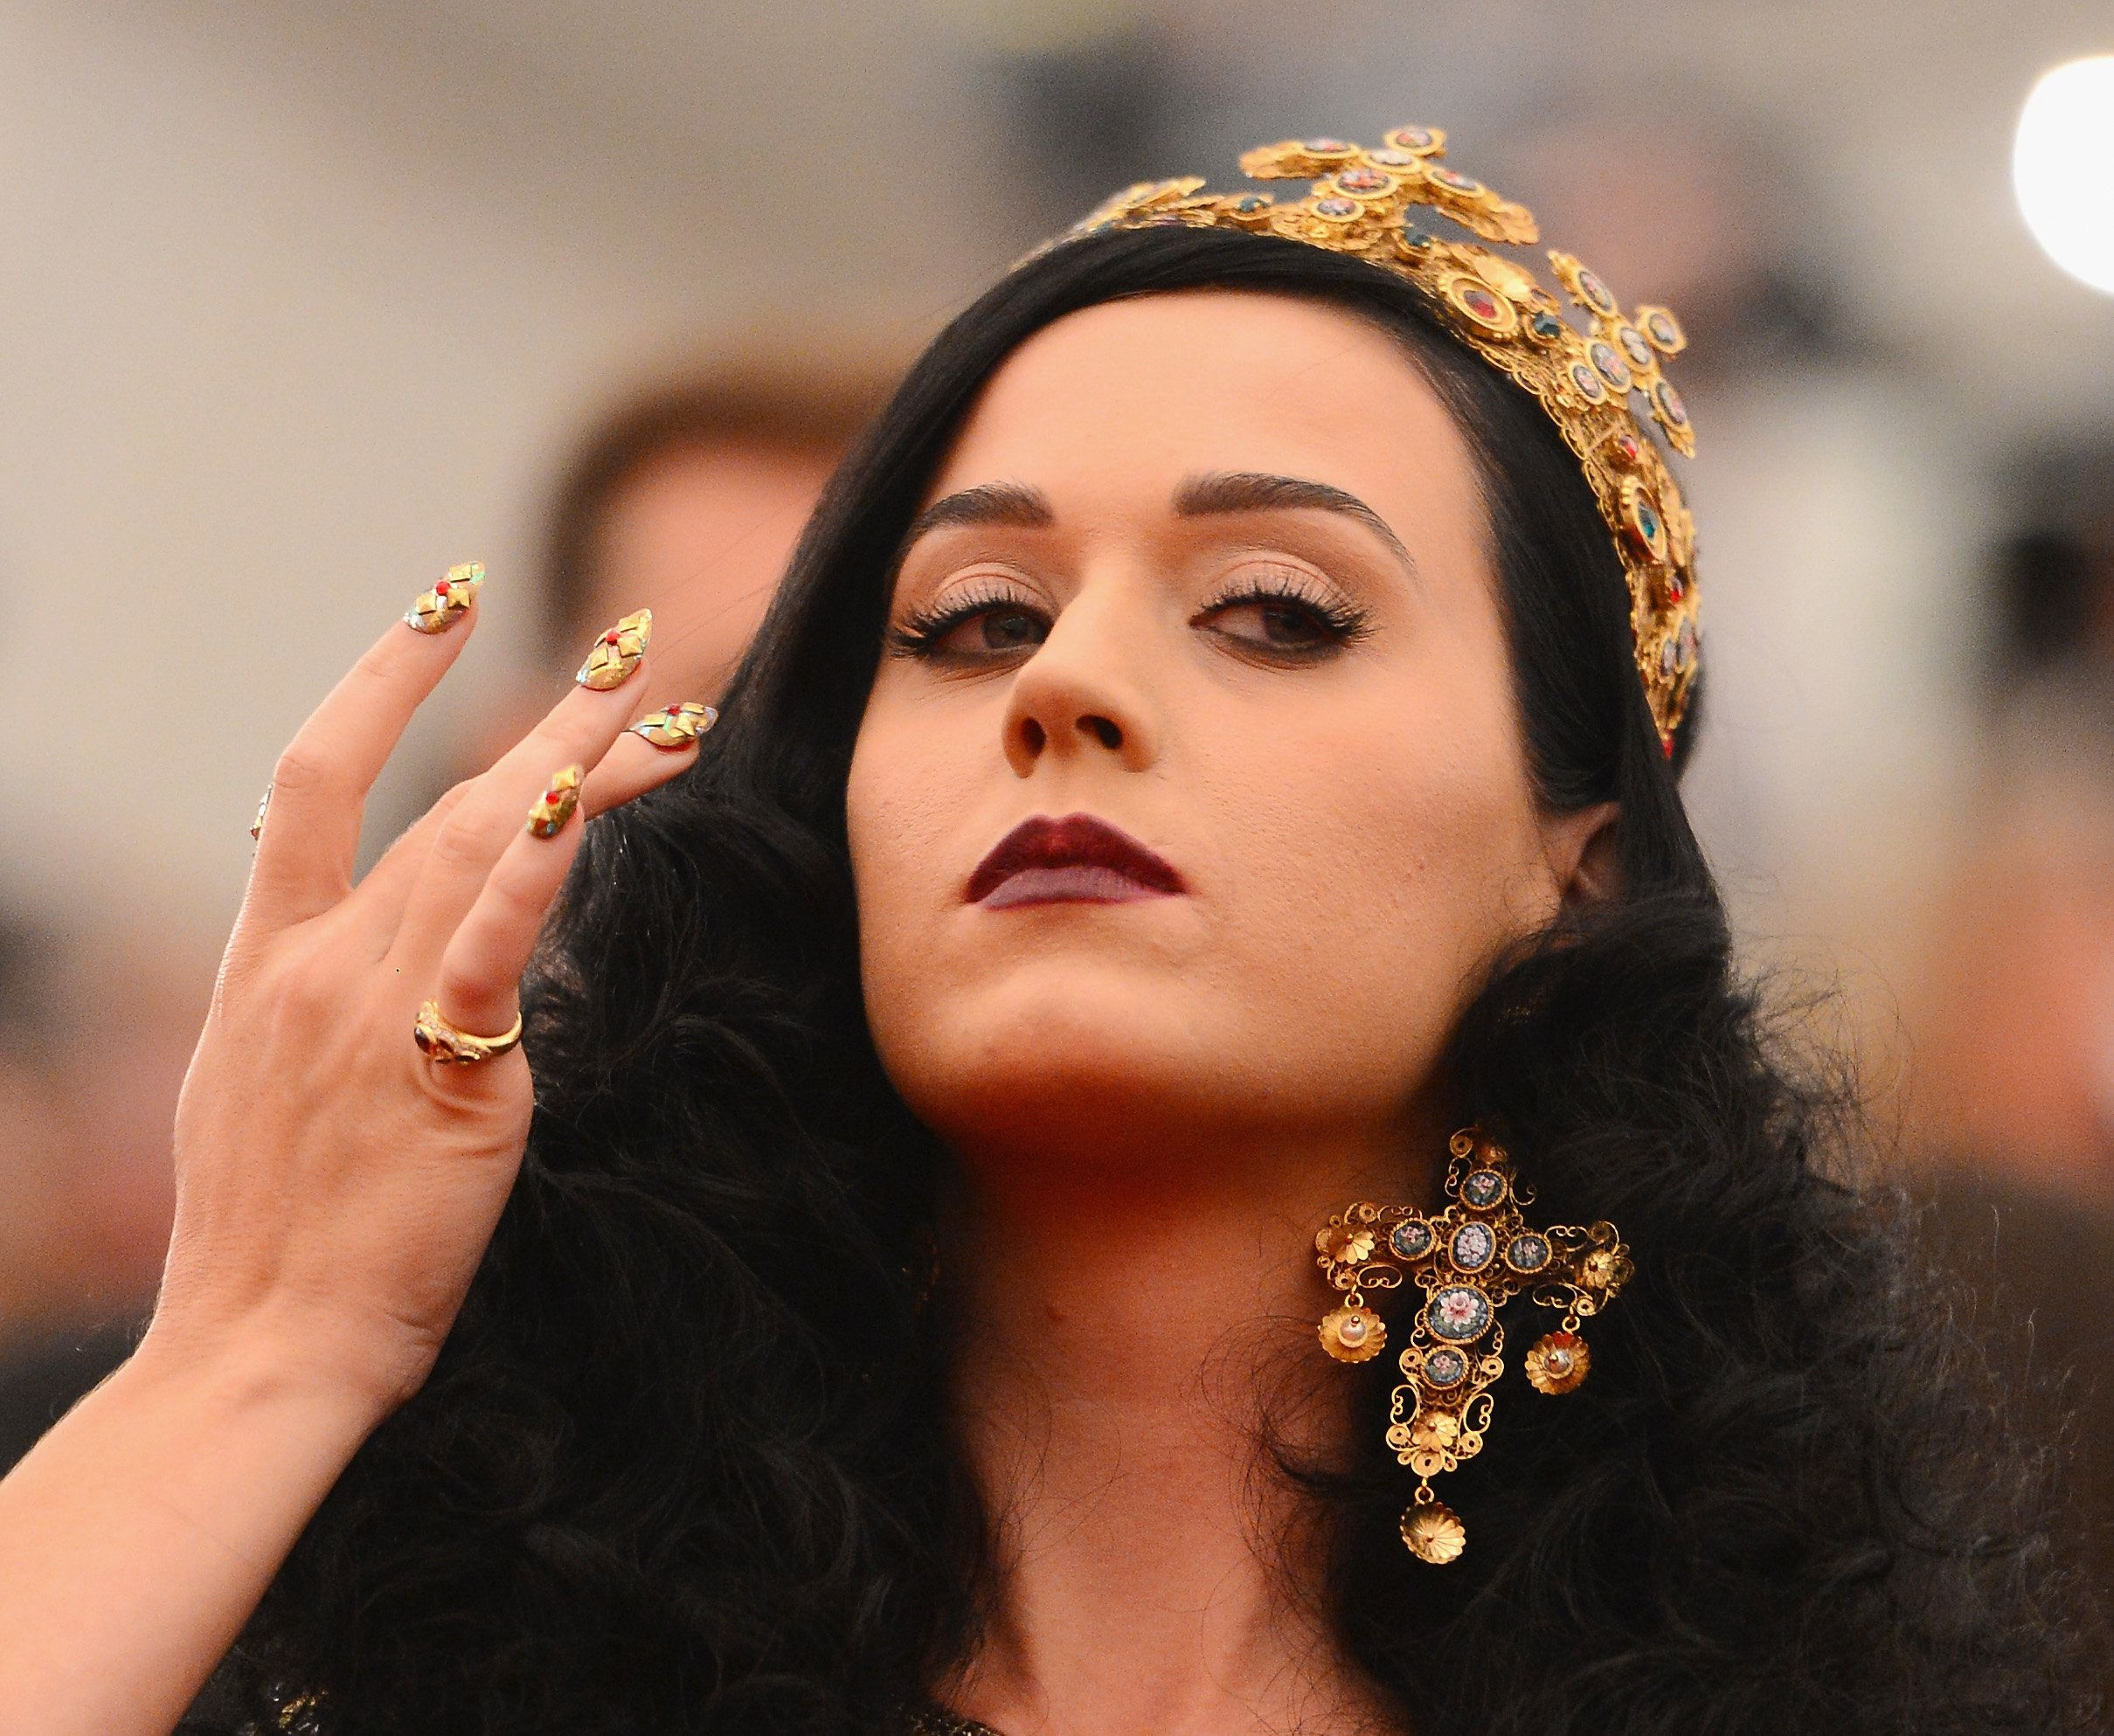 Bow down.